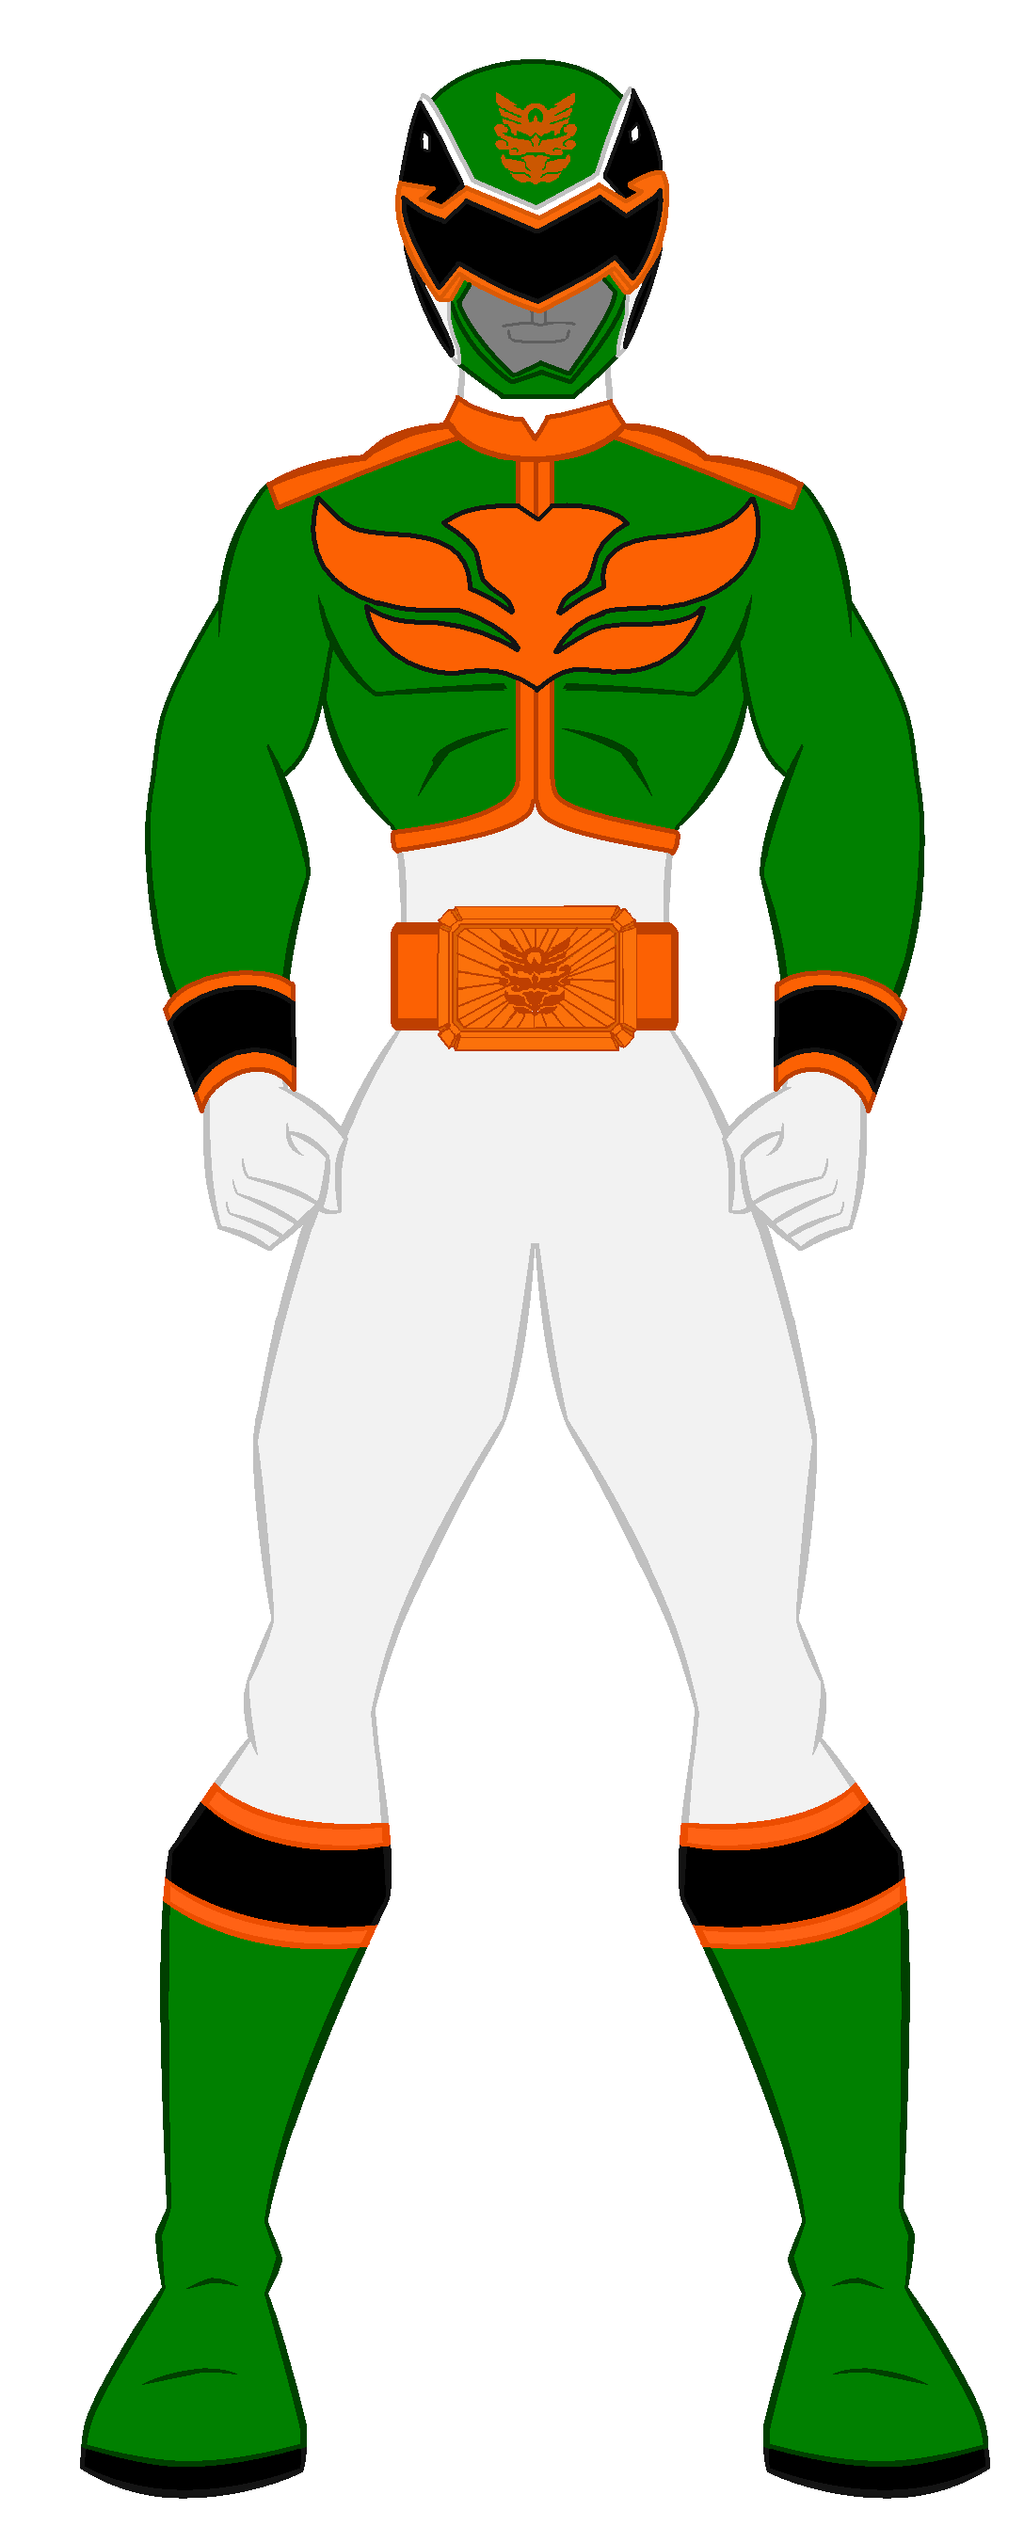 19 power rangers megaforce green ranger by powerrangersworld999 on deviantart